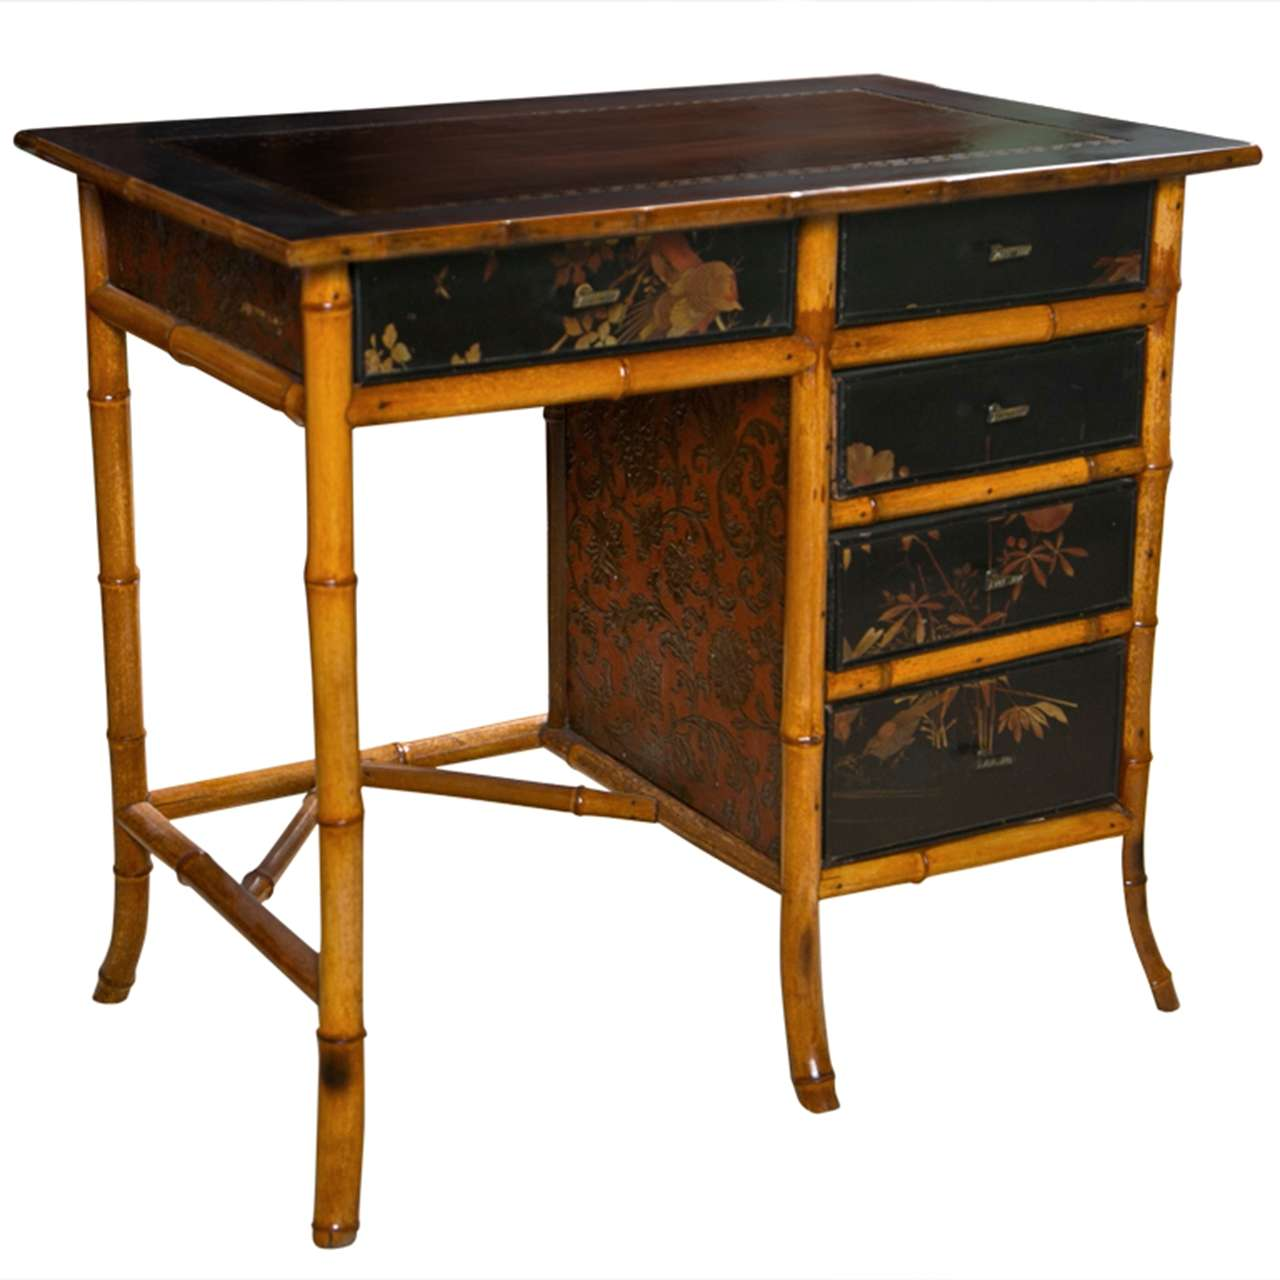 Victorian Chinoiserie Bamboo Desk at 1stdibs